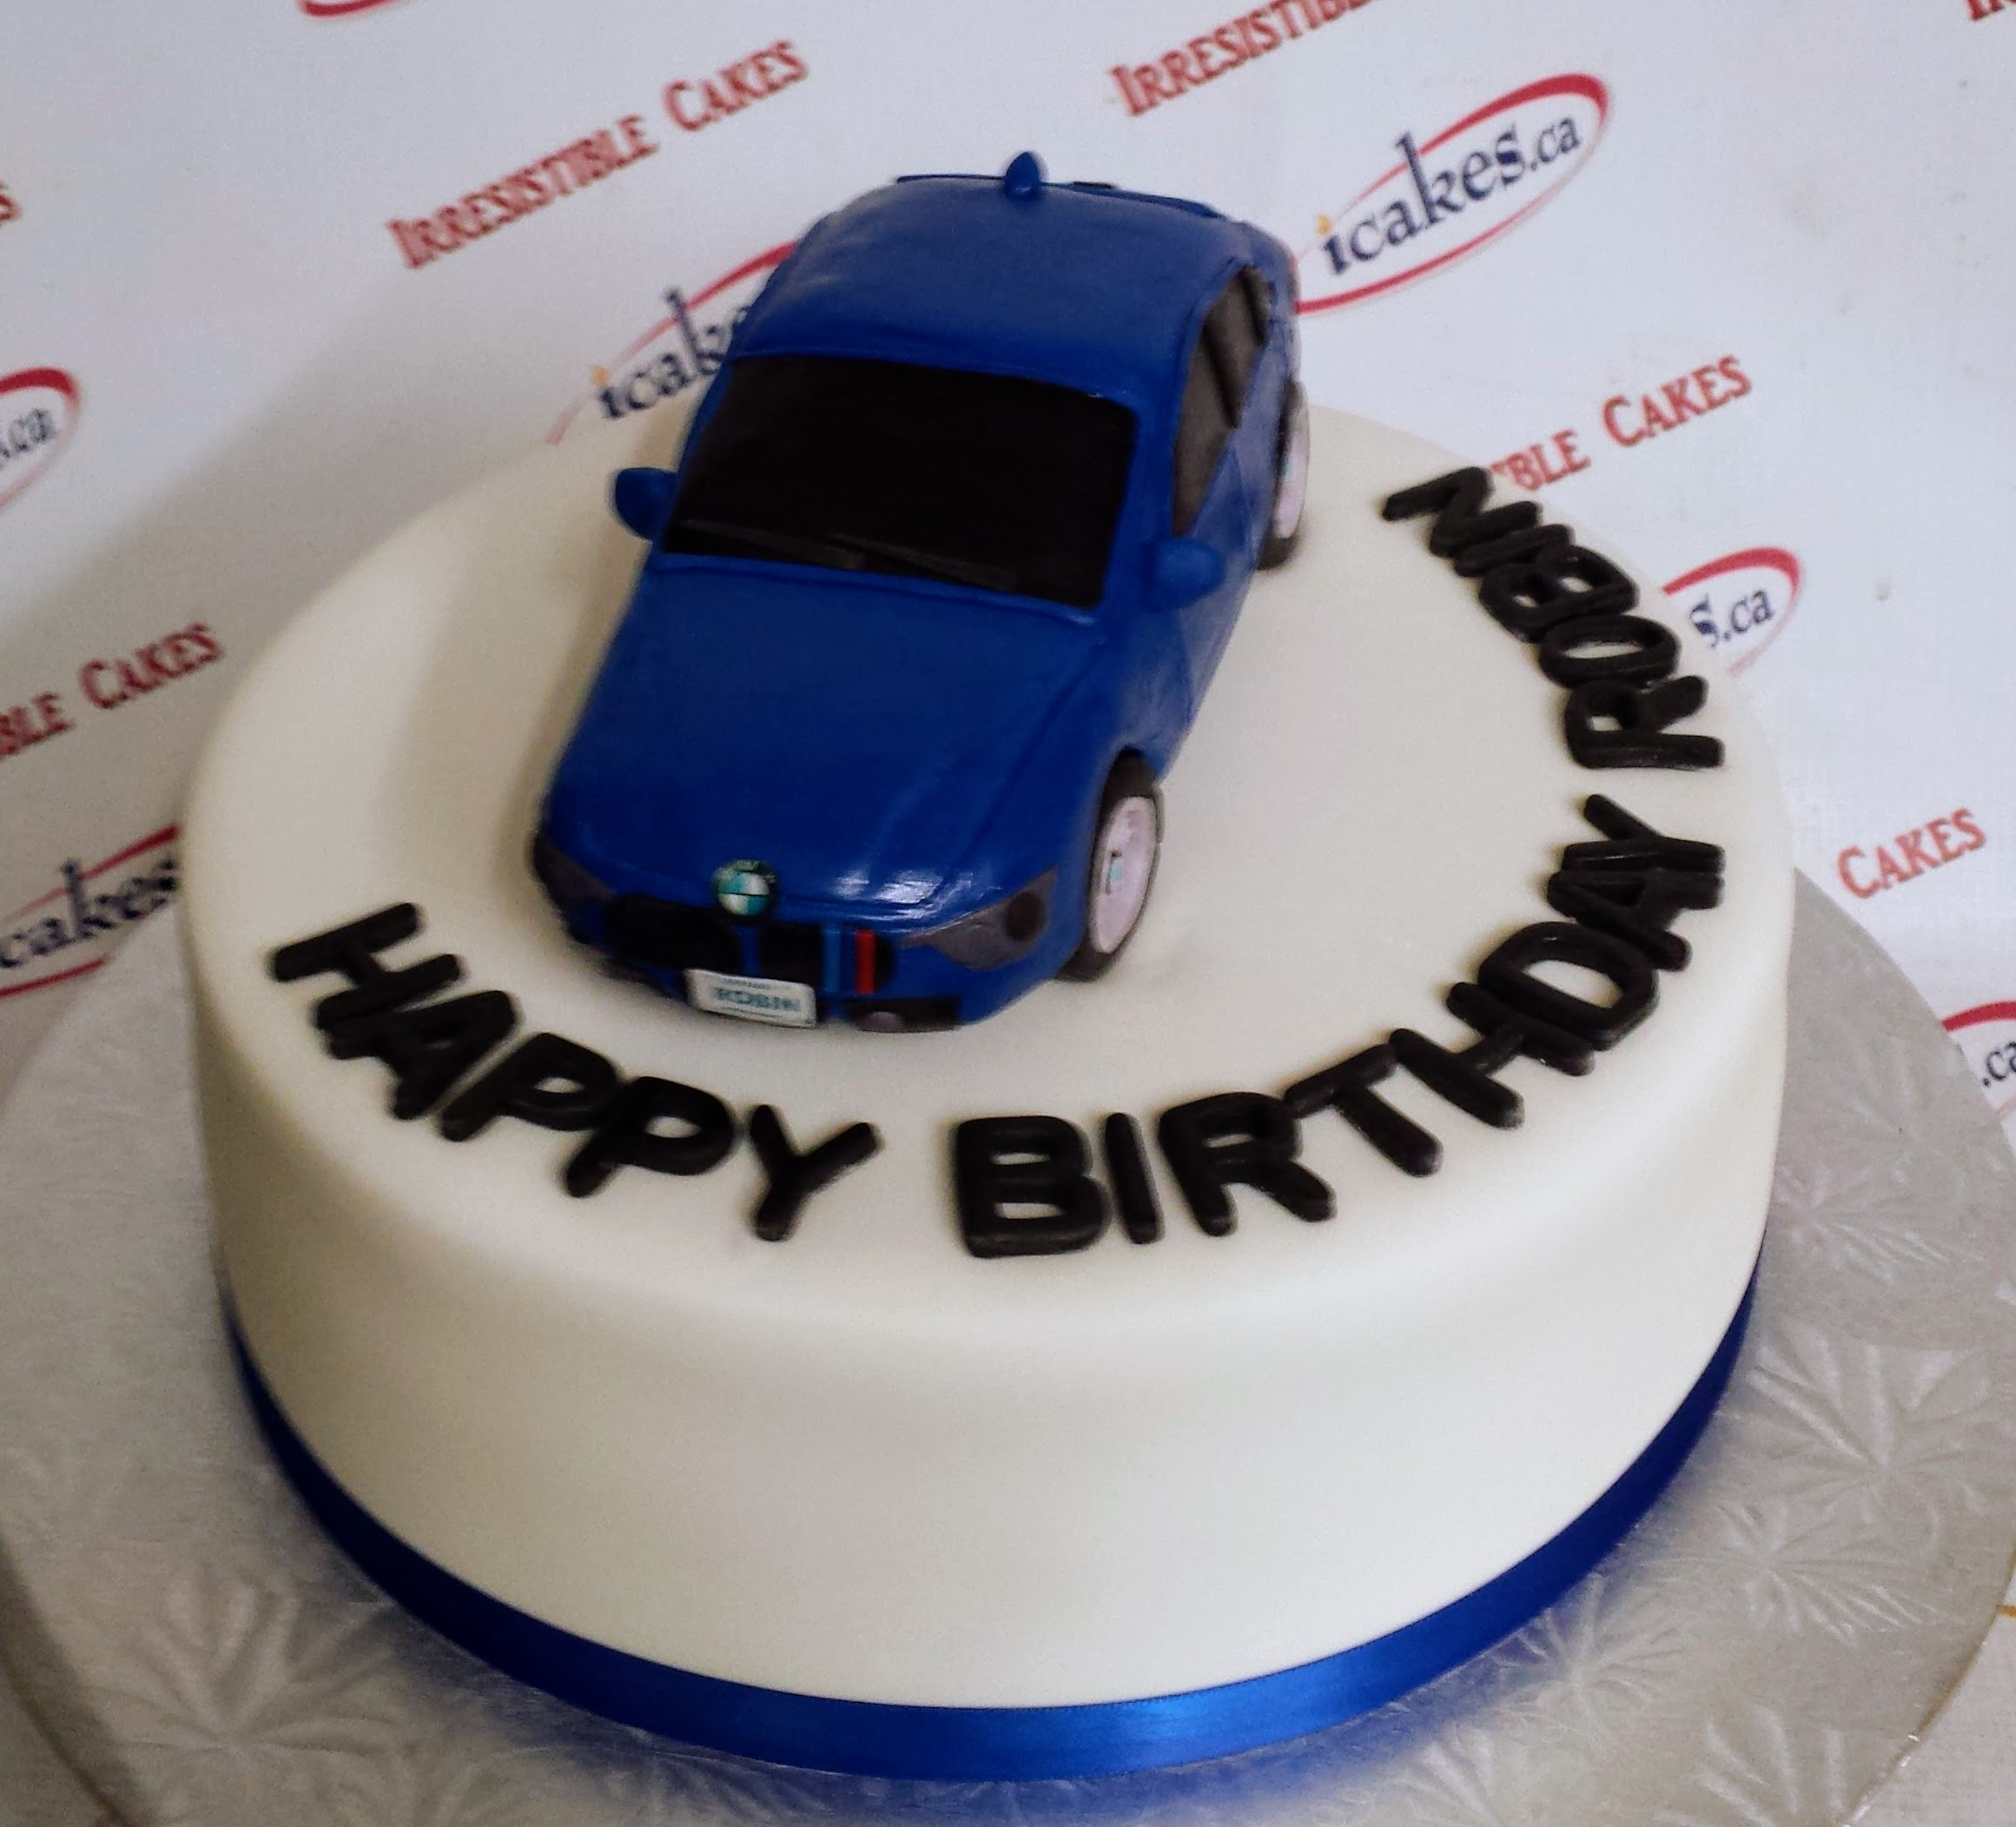 Use royal icing to cover the cake. Wedding Cakes Birthday Cakes Custom Cakes From Toronto